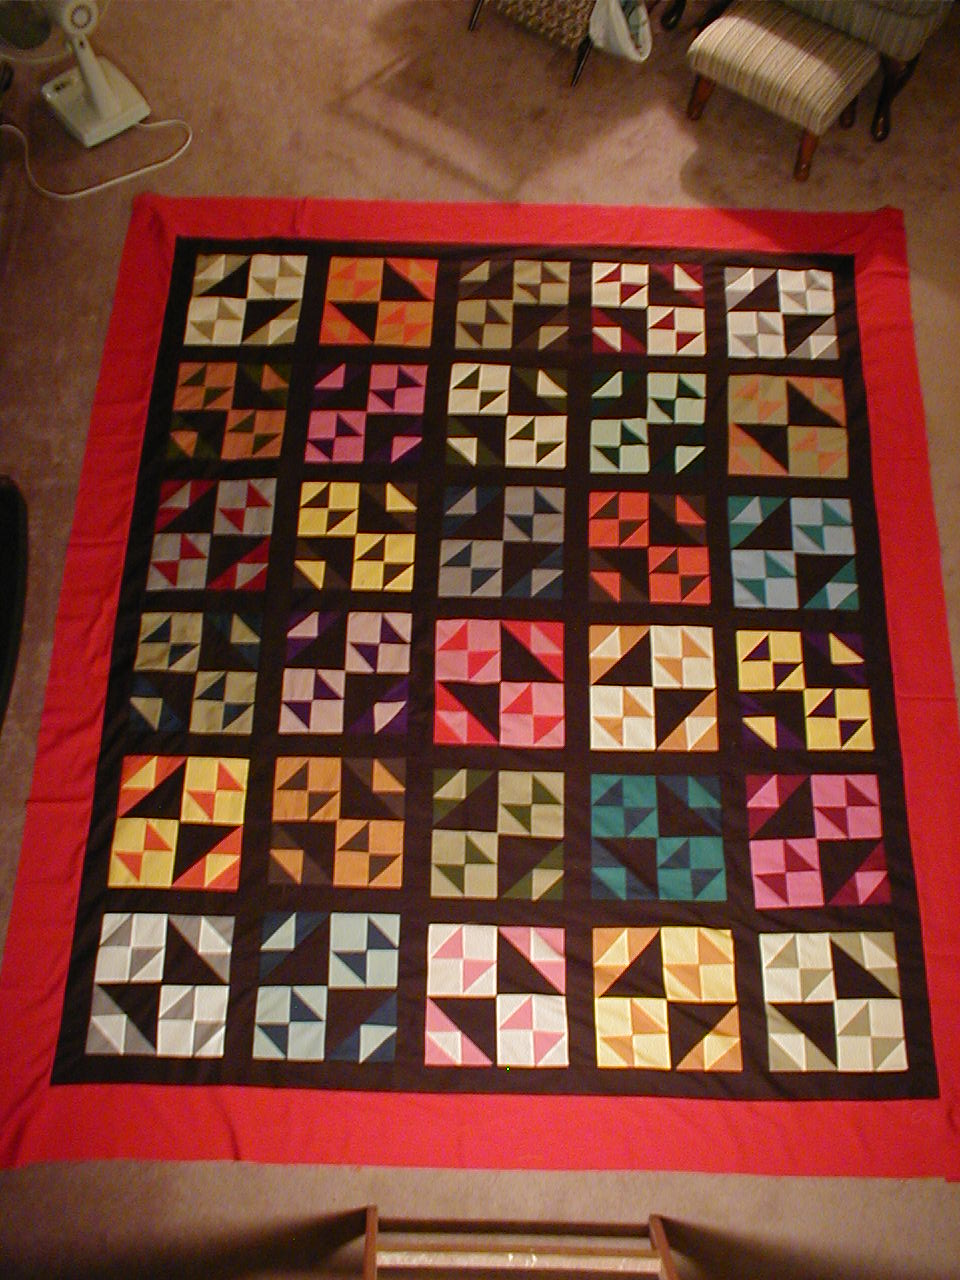 as own thank for quilting a togethers updates adinkra man he you together news ghana beautiful mr first our quilt made symbols s kathryn herself